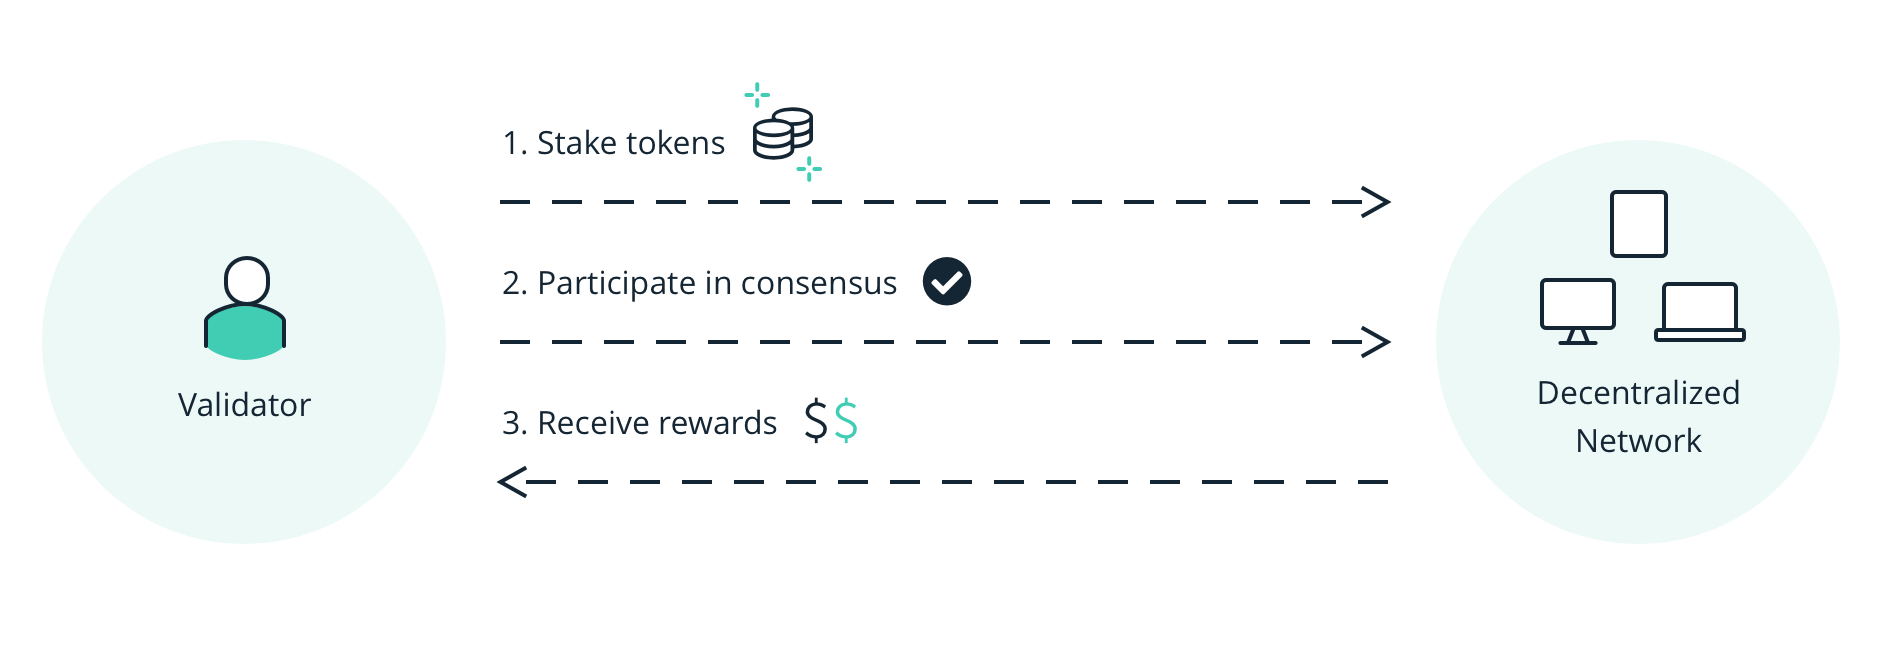 Validators and rewards